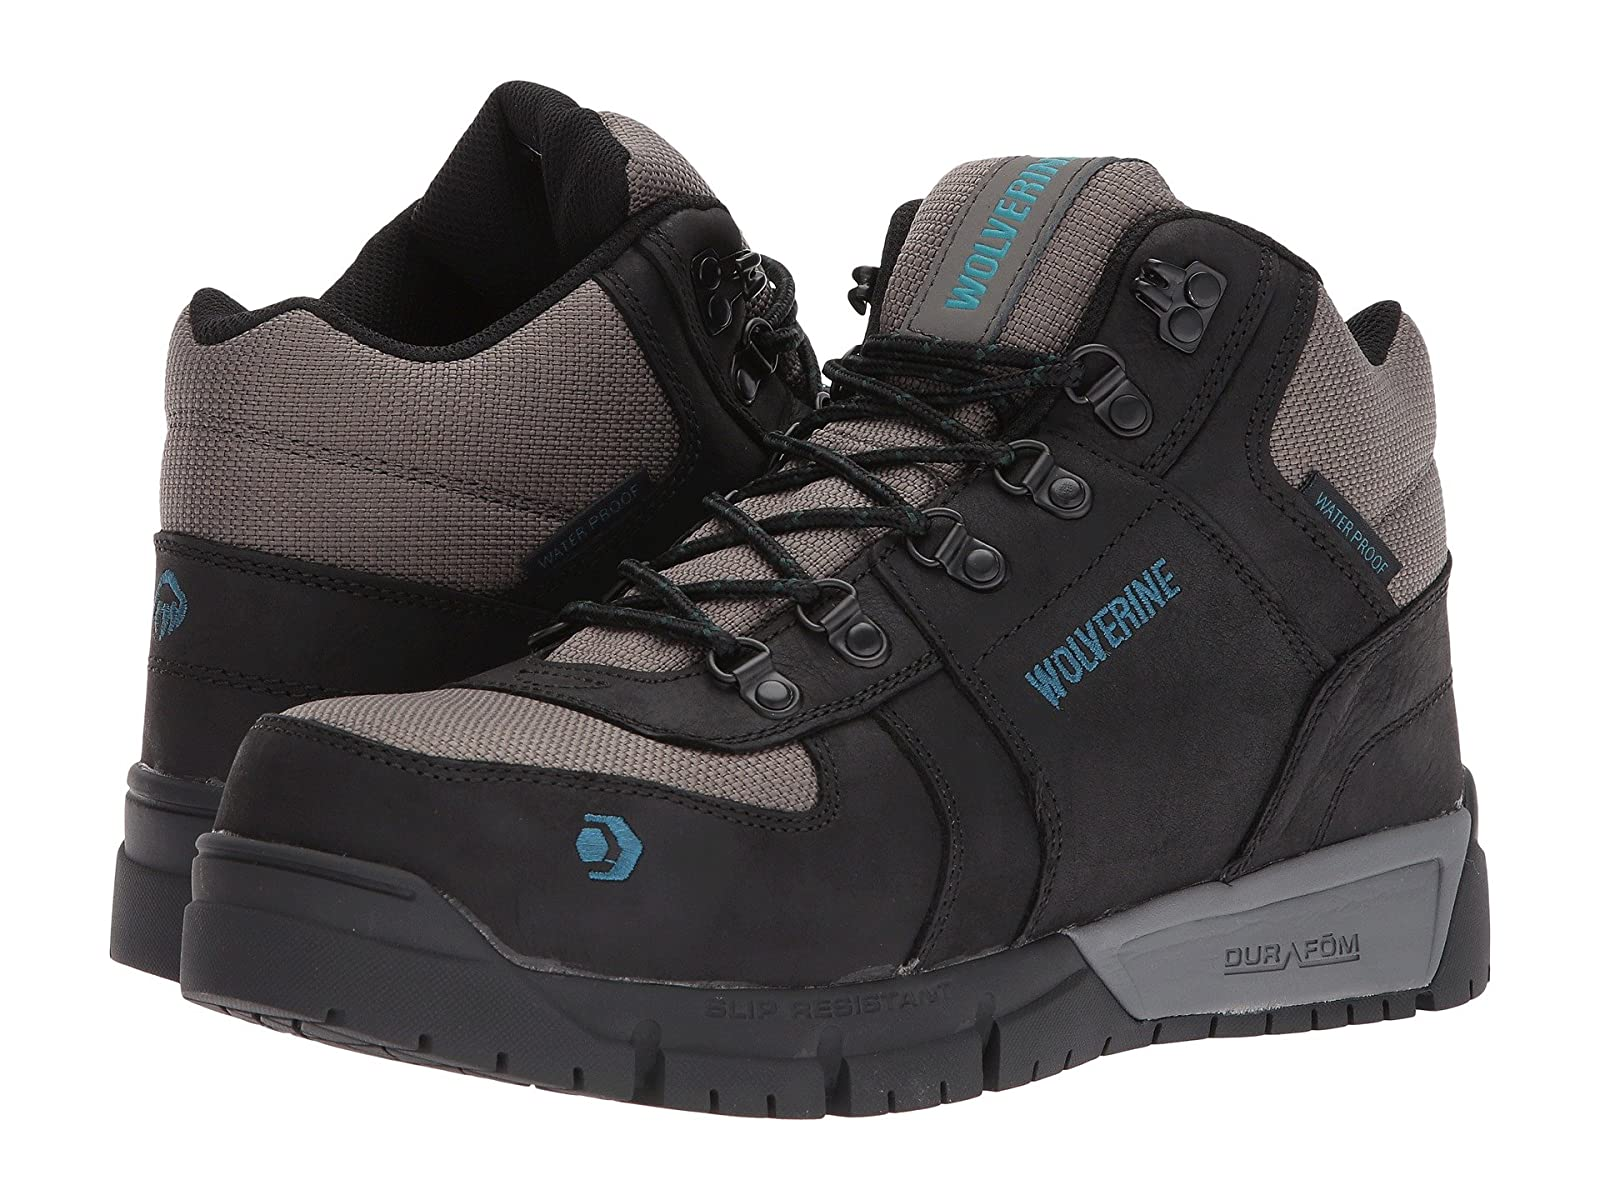 Wolverine Mauler Hiker CarbonMAX BootEconomical and quality shoes